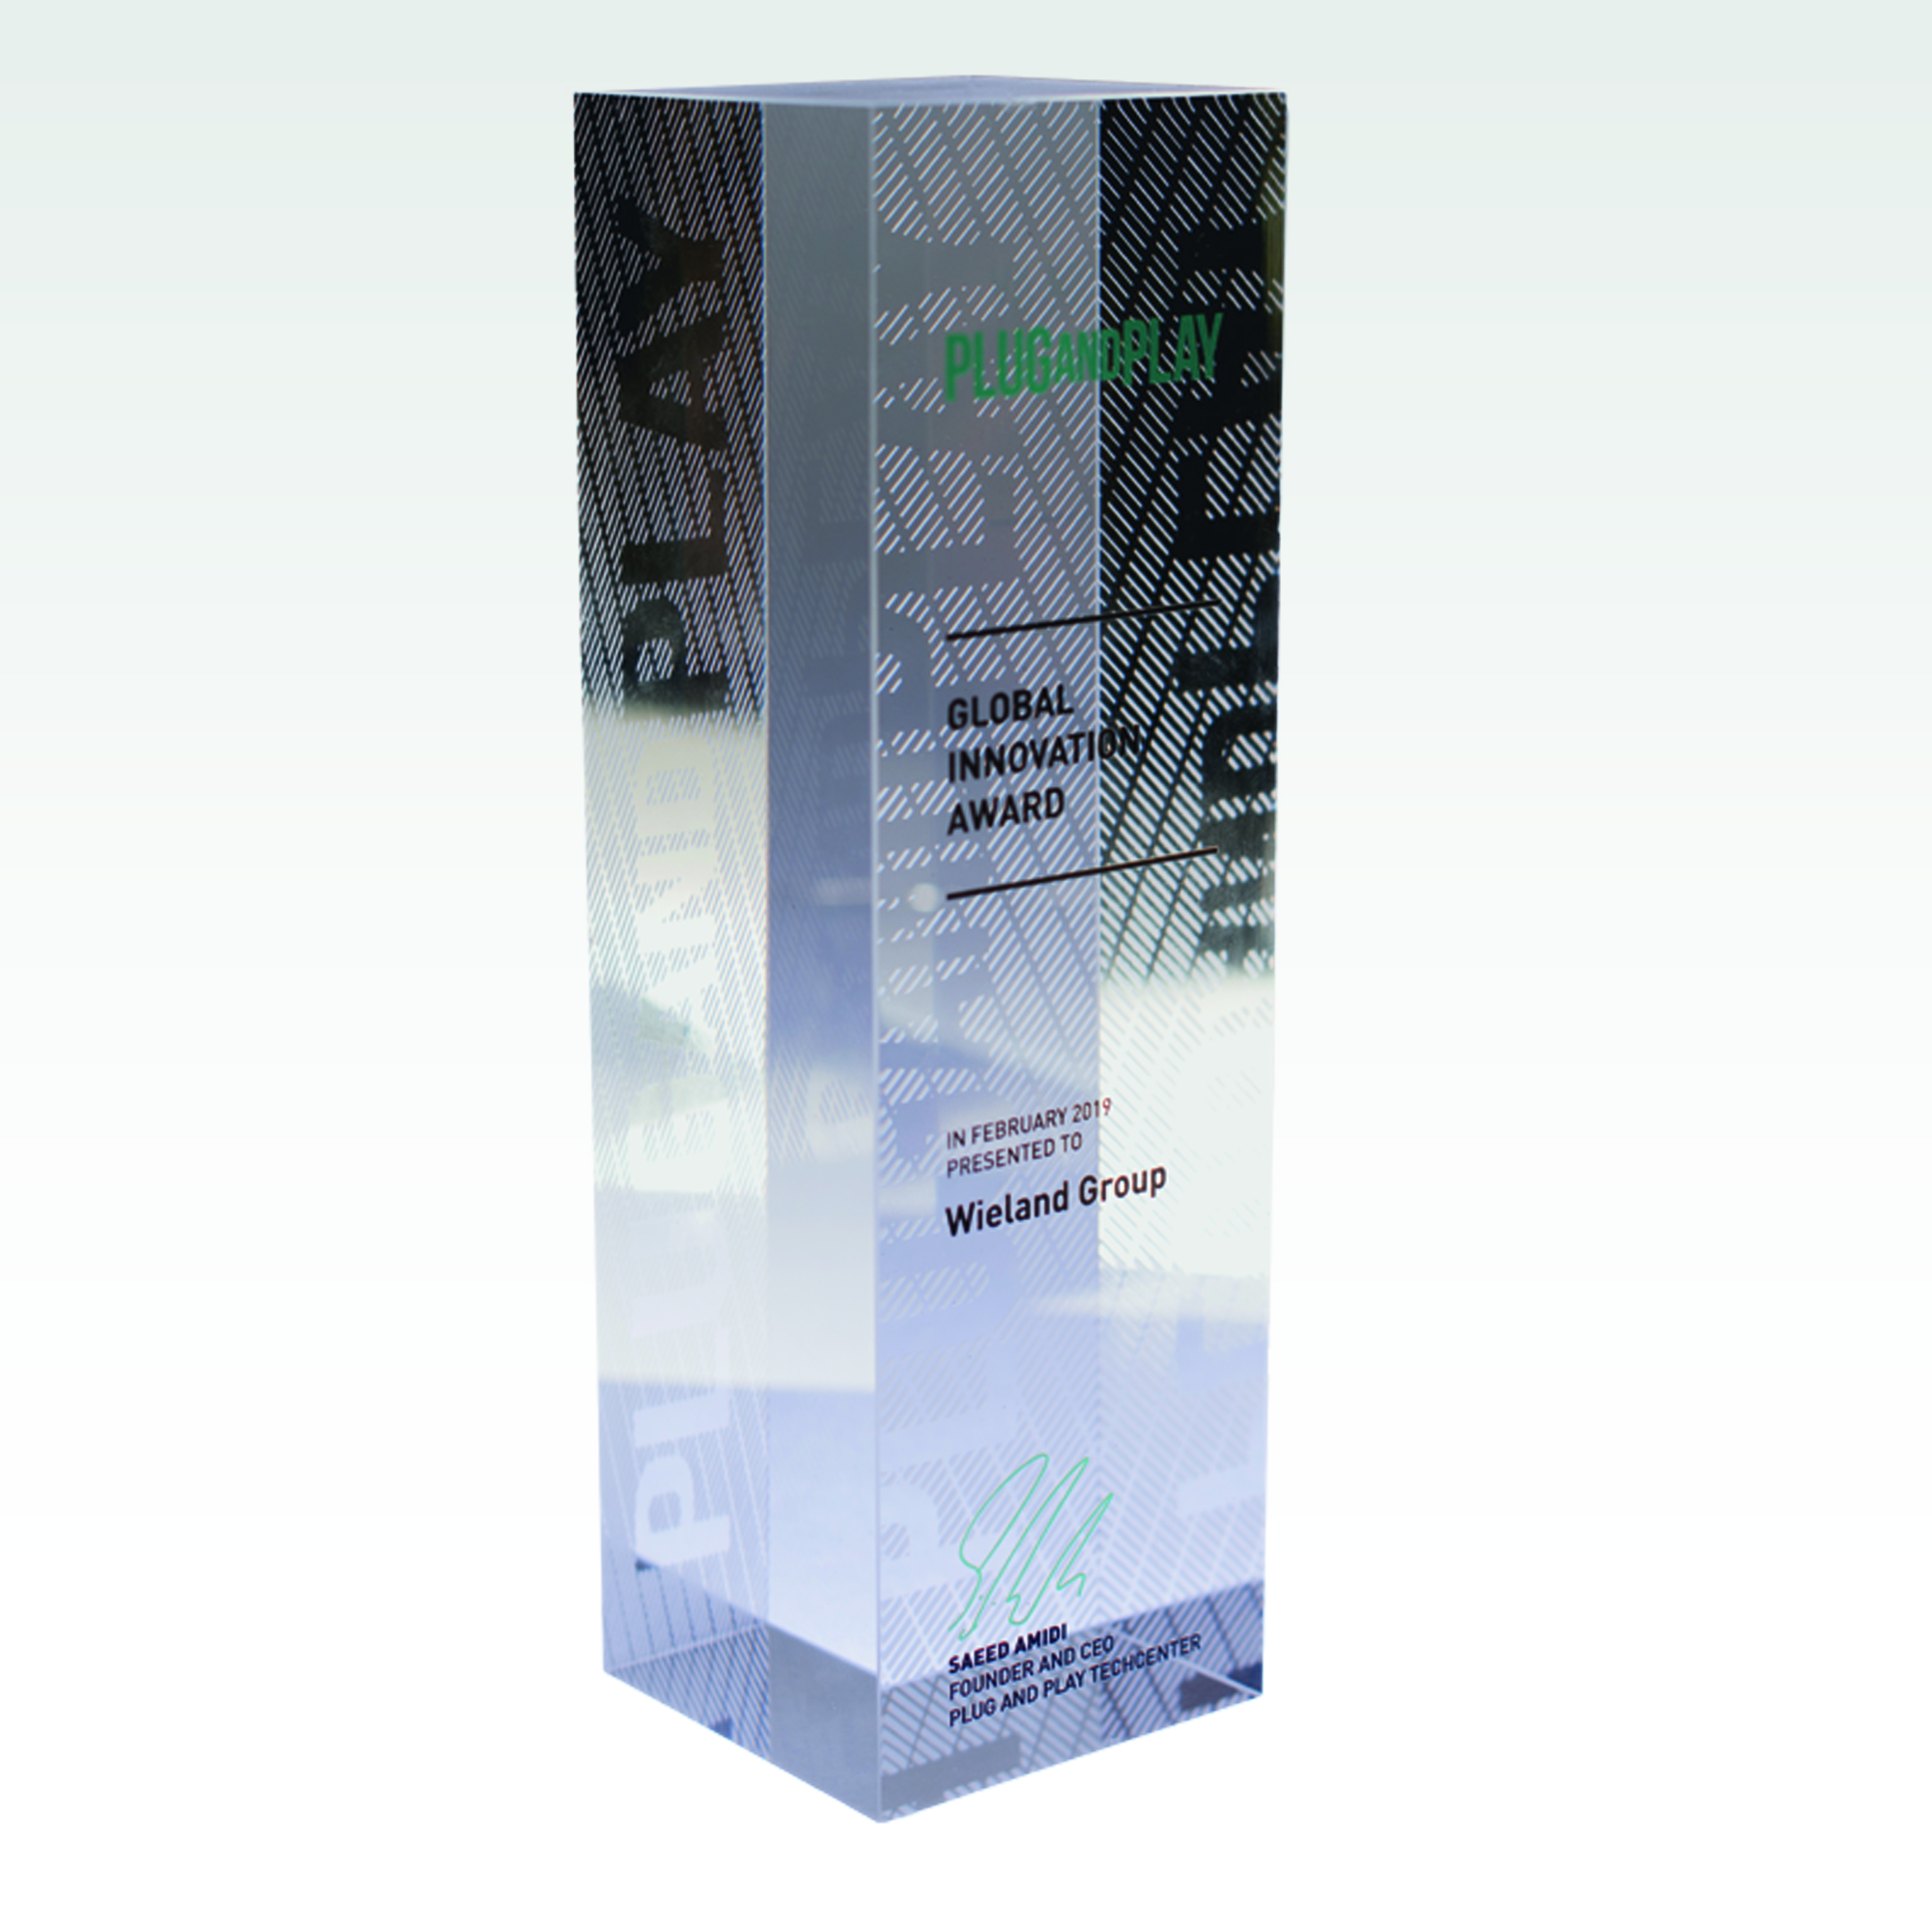 Global <br> Innovation <br>Award